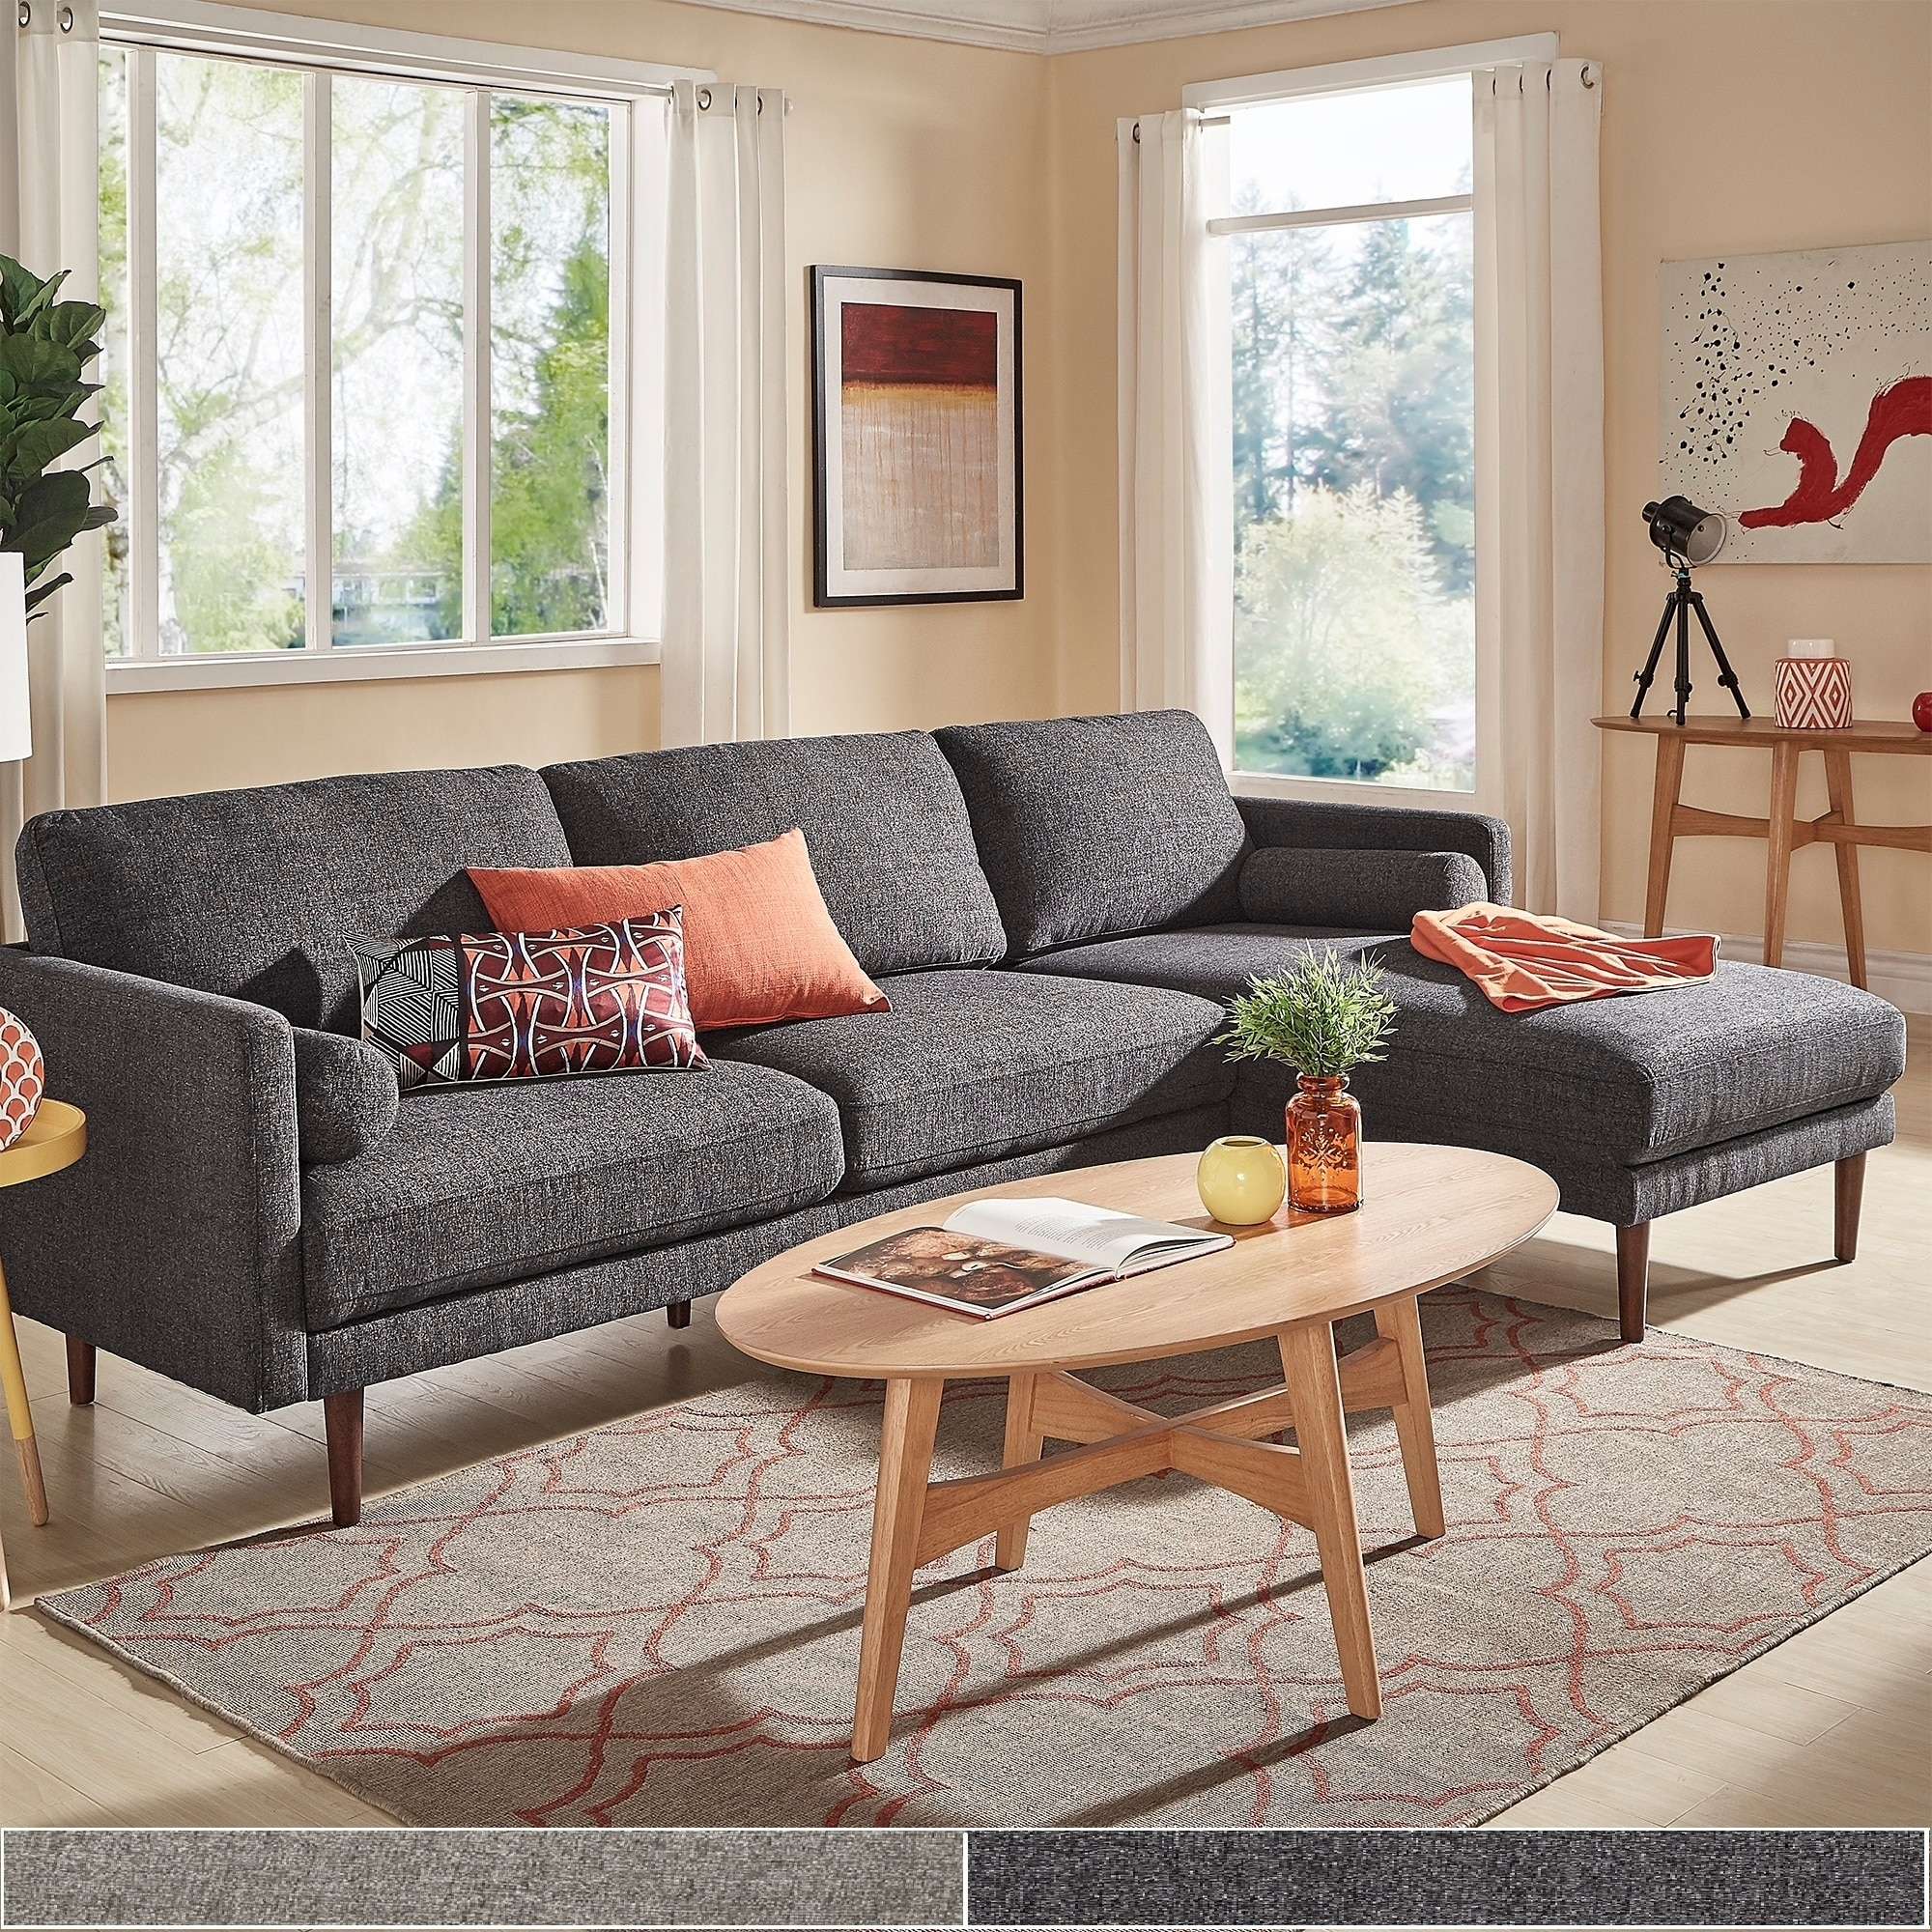 Buy Modern & Contemporary Sectional Sofas Online at Overstock   Our ...